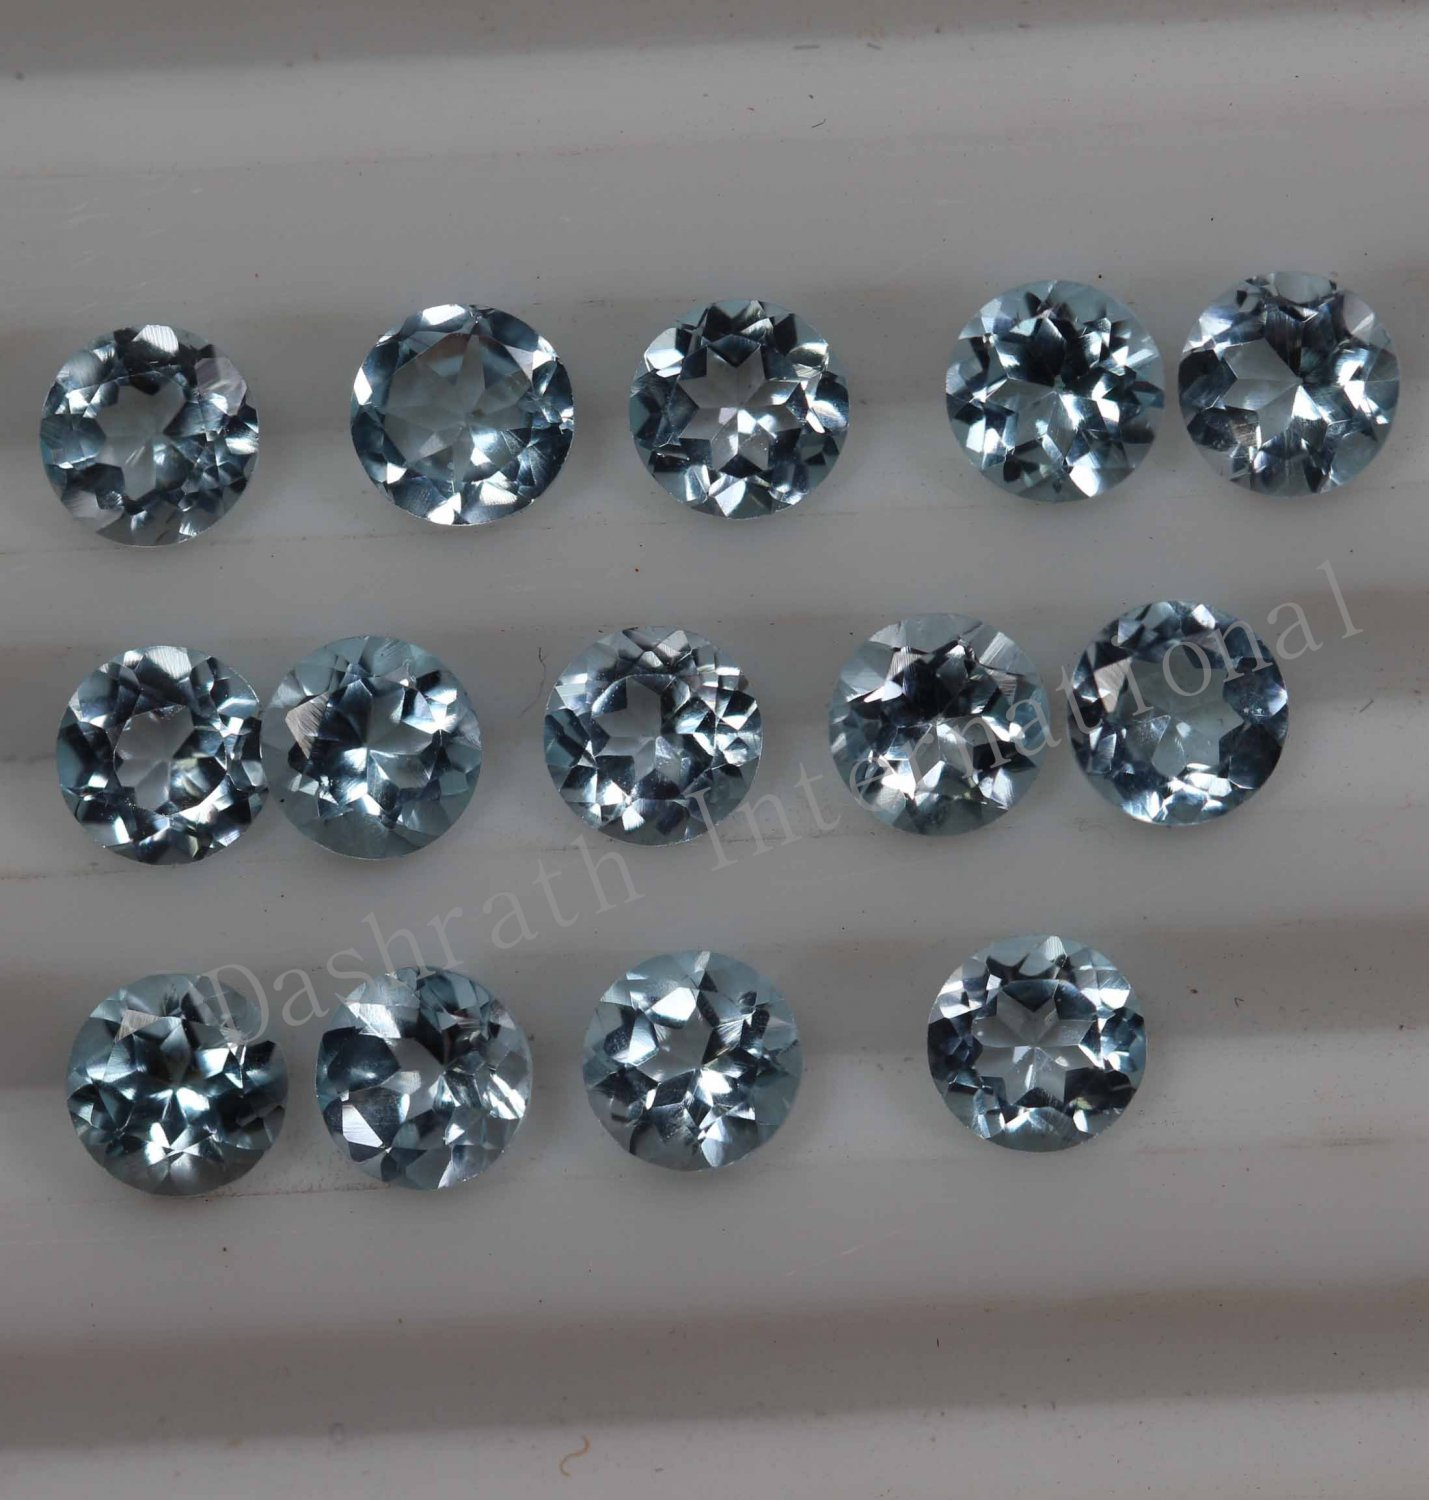 3mmNatural Sky Blue Topaz Faceted Cut Round 50 Pieces Lot Blue Color  Top Quality Loose Gemstone